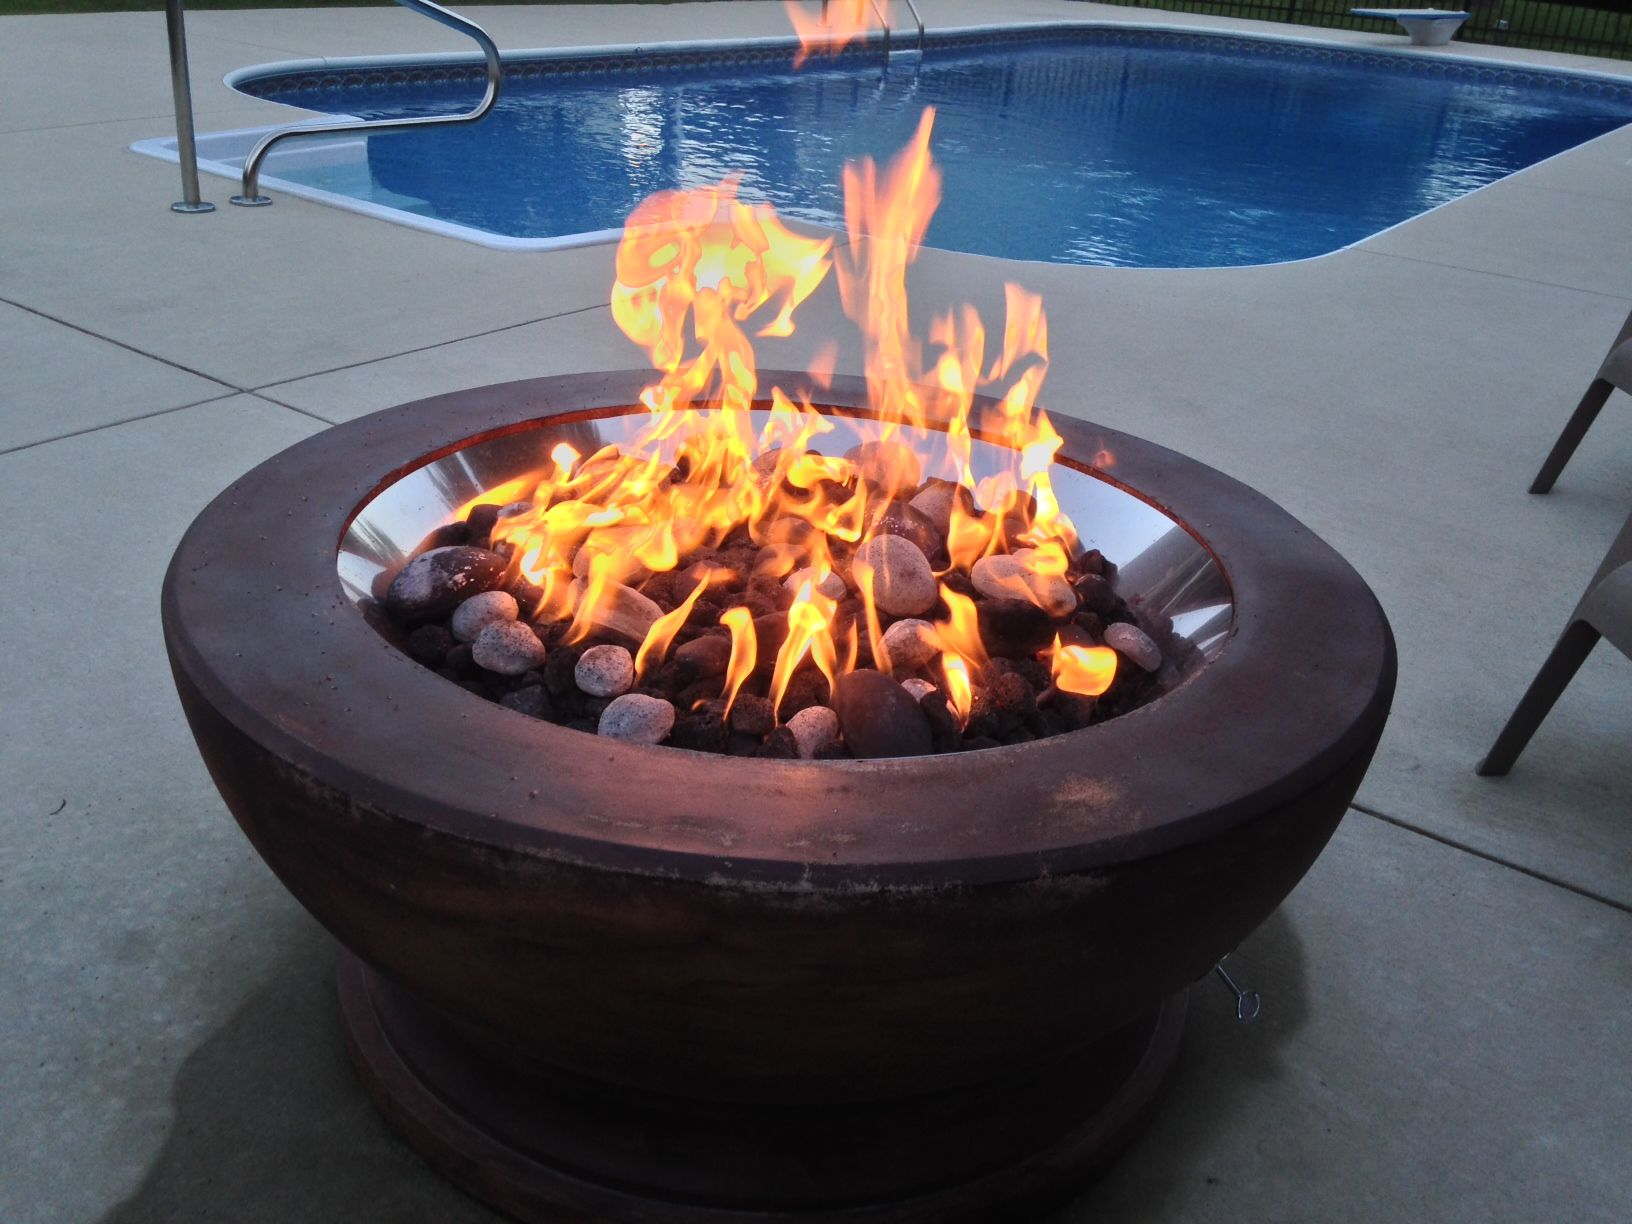 This Is One Of Our 25 Gas Fire Pit Inserts Installed Into A Concrete Planter With Black River Rock Stones Used Inside The Fi Gas Firepit Fire Pit Fire Pit Kit